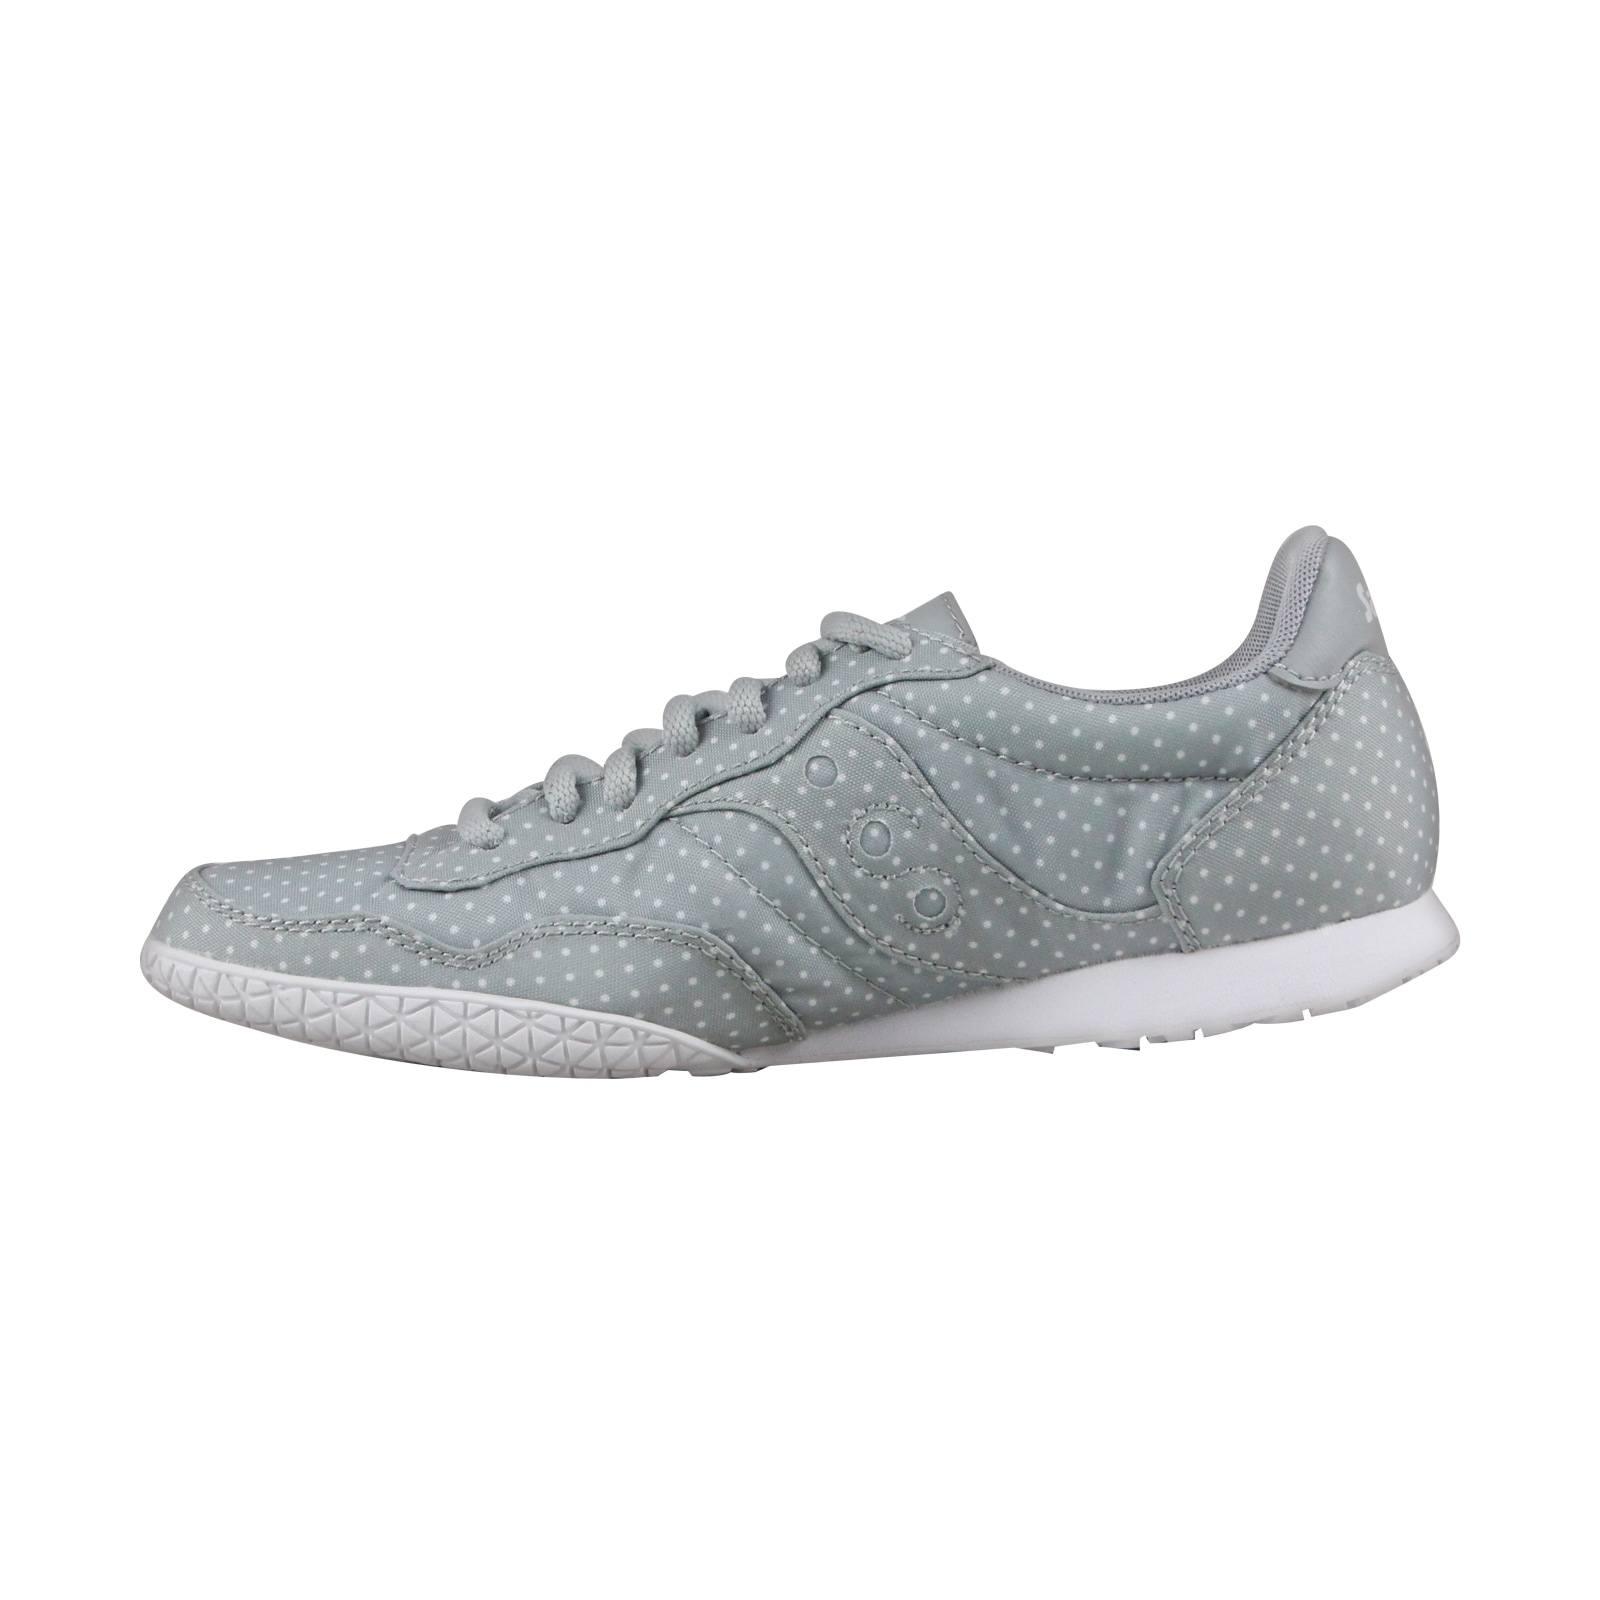 8ee02fd03f8d Shop Saucony Bullet Womens Gray Mesh Lace Up Sneakers Shoes - Free Shipping  On Orders Over  45 - Overstock - 20722112